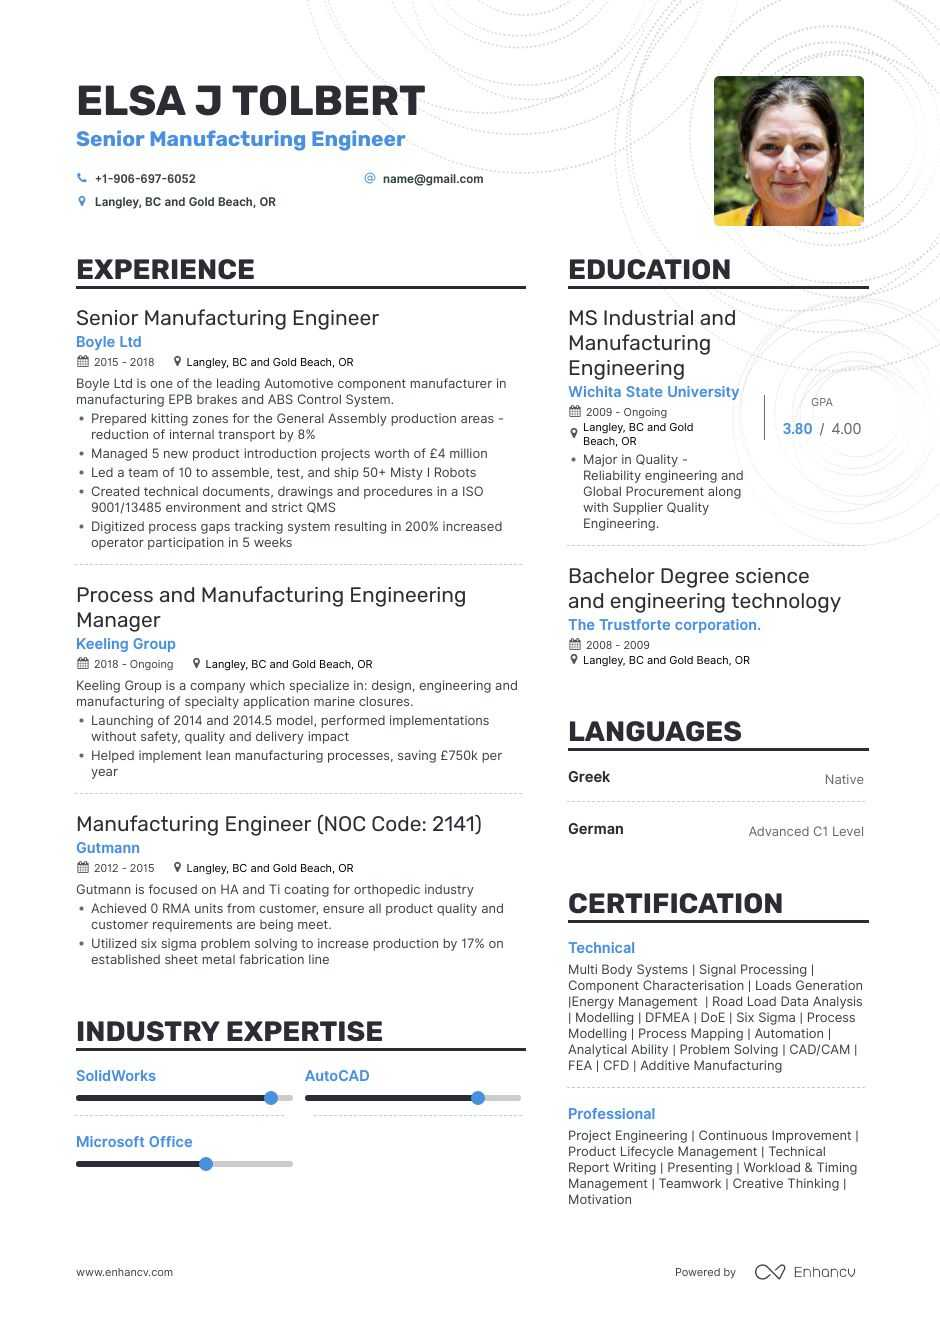 manufacturing engineer resume example for enhancv automobile experience dental assistant Resume Automobile Engineer Resume